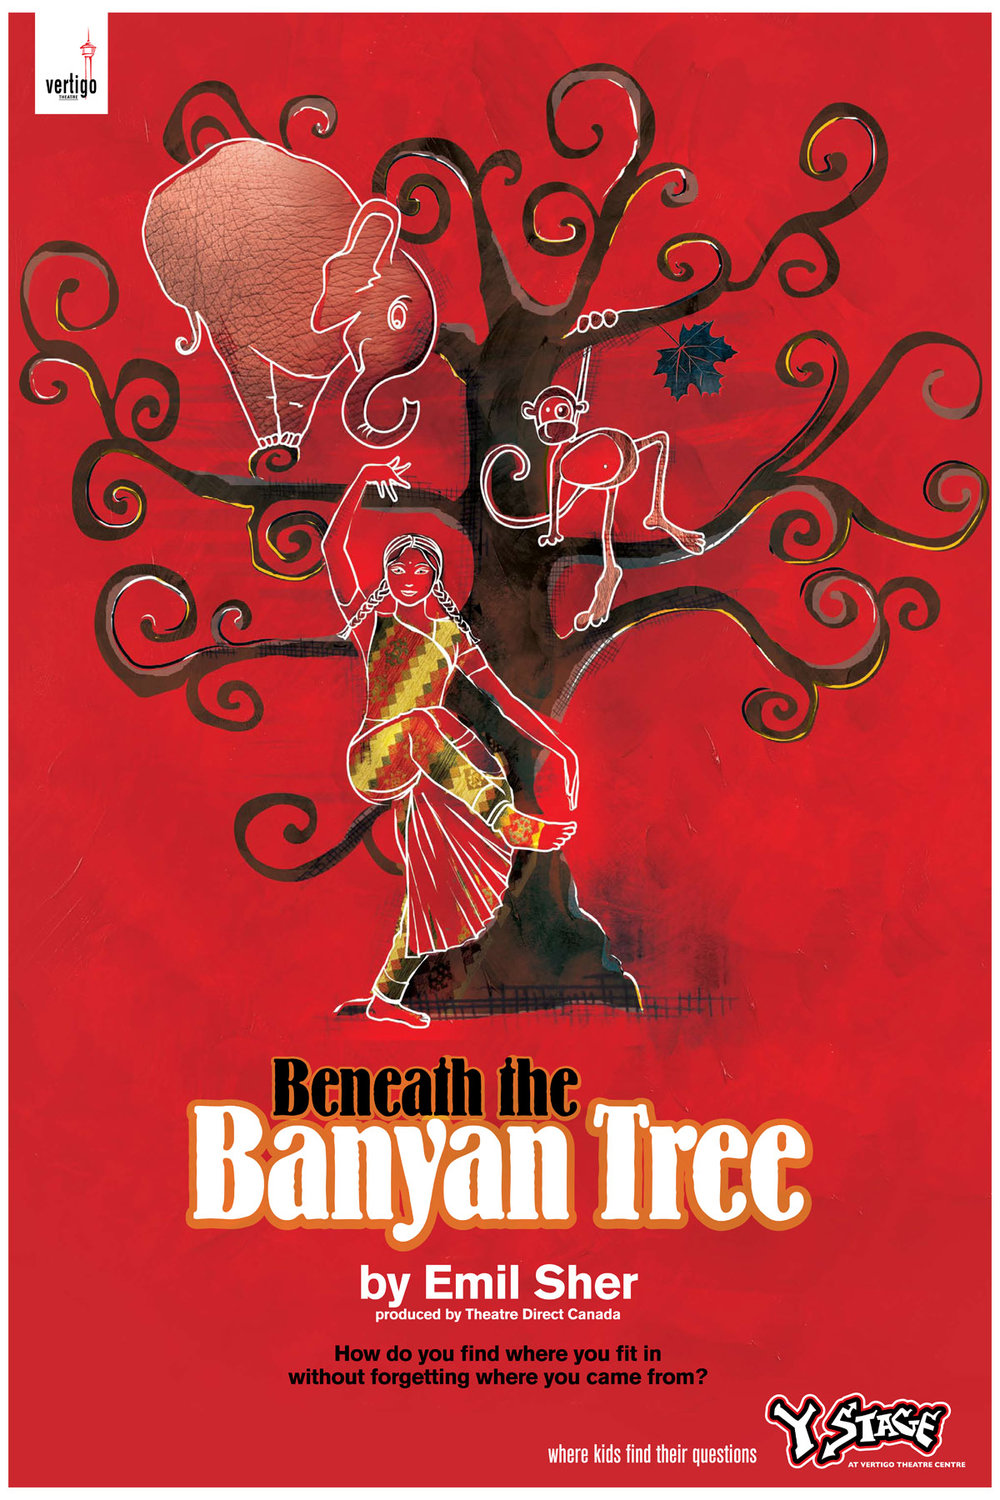 BENEATH THE BANYAN TREE